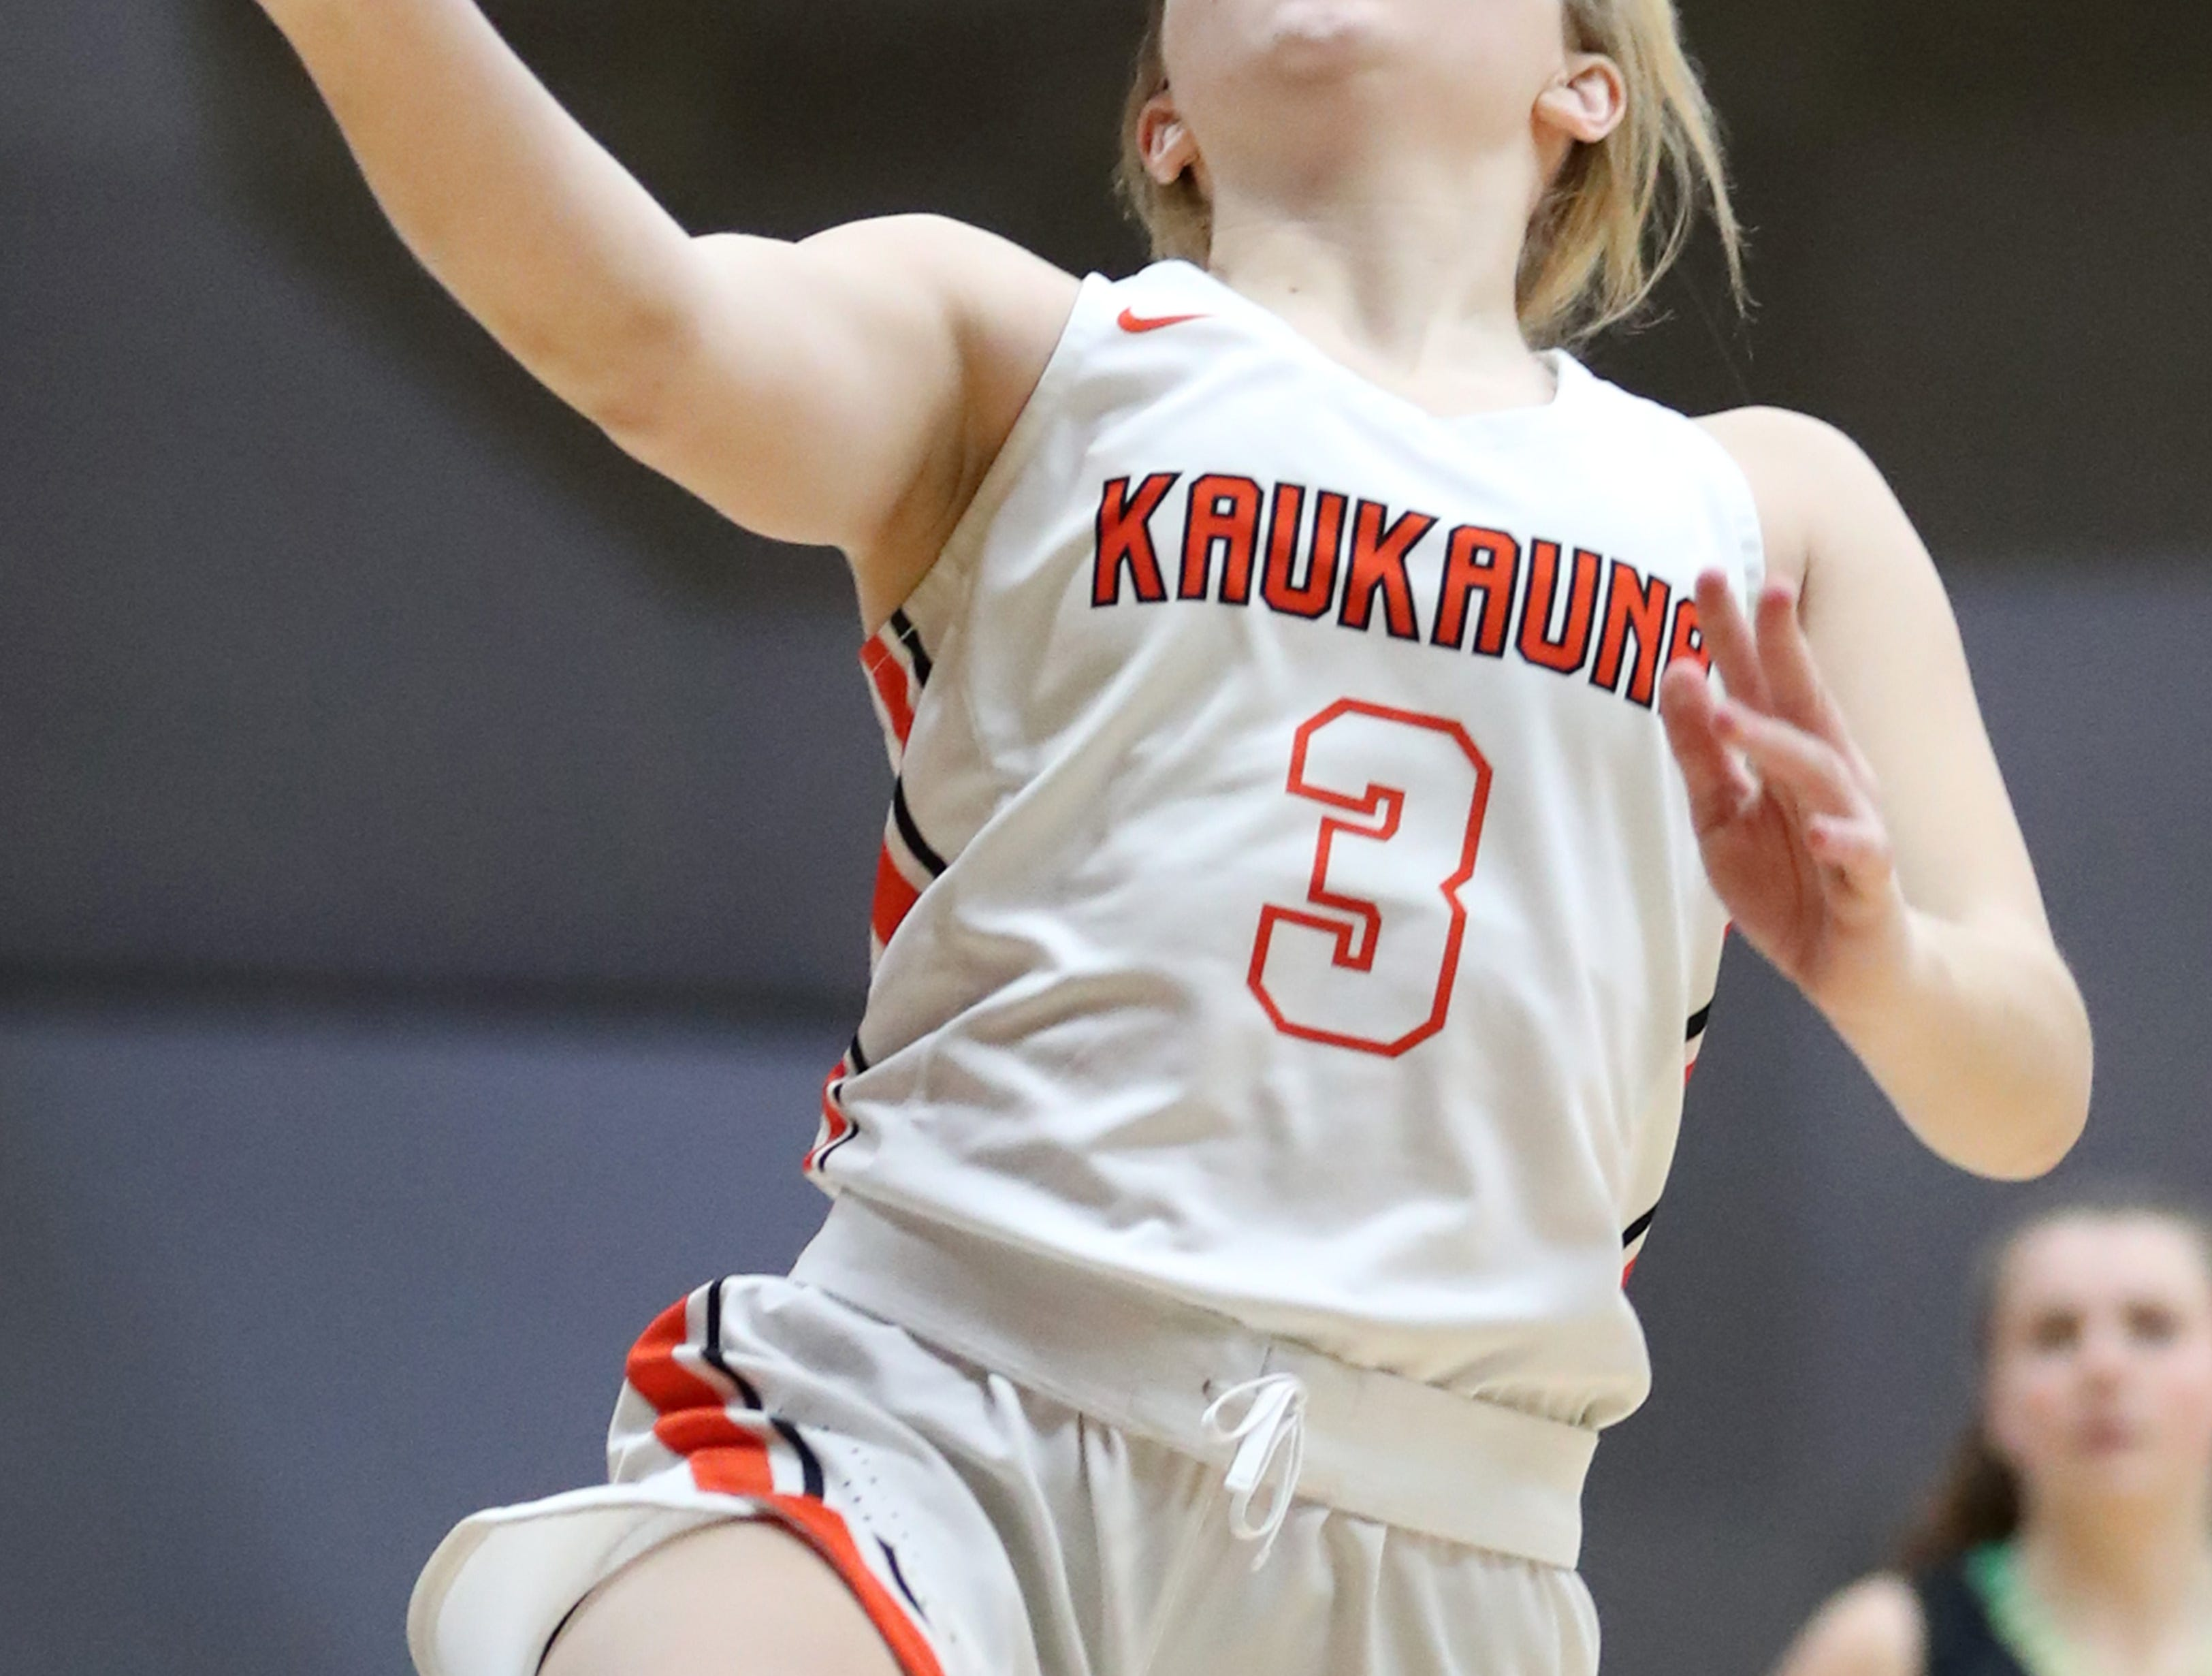 Kaukauna High School's Khloe Hinkens goes for a layup against Oshkosh North High School Tuesday, Feb. 5, 2019, in Kaukauna, Wis. Oshkosh North defeated Kaukauna High School 77-51.